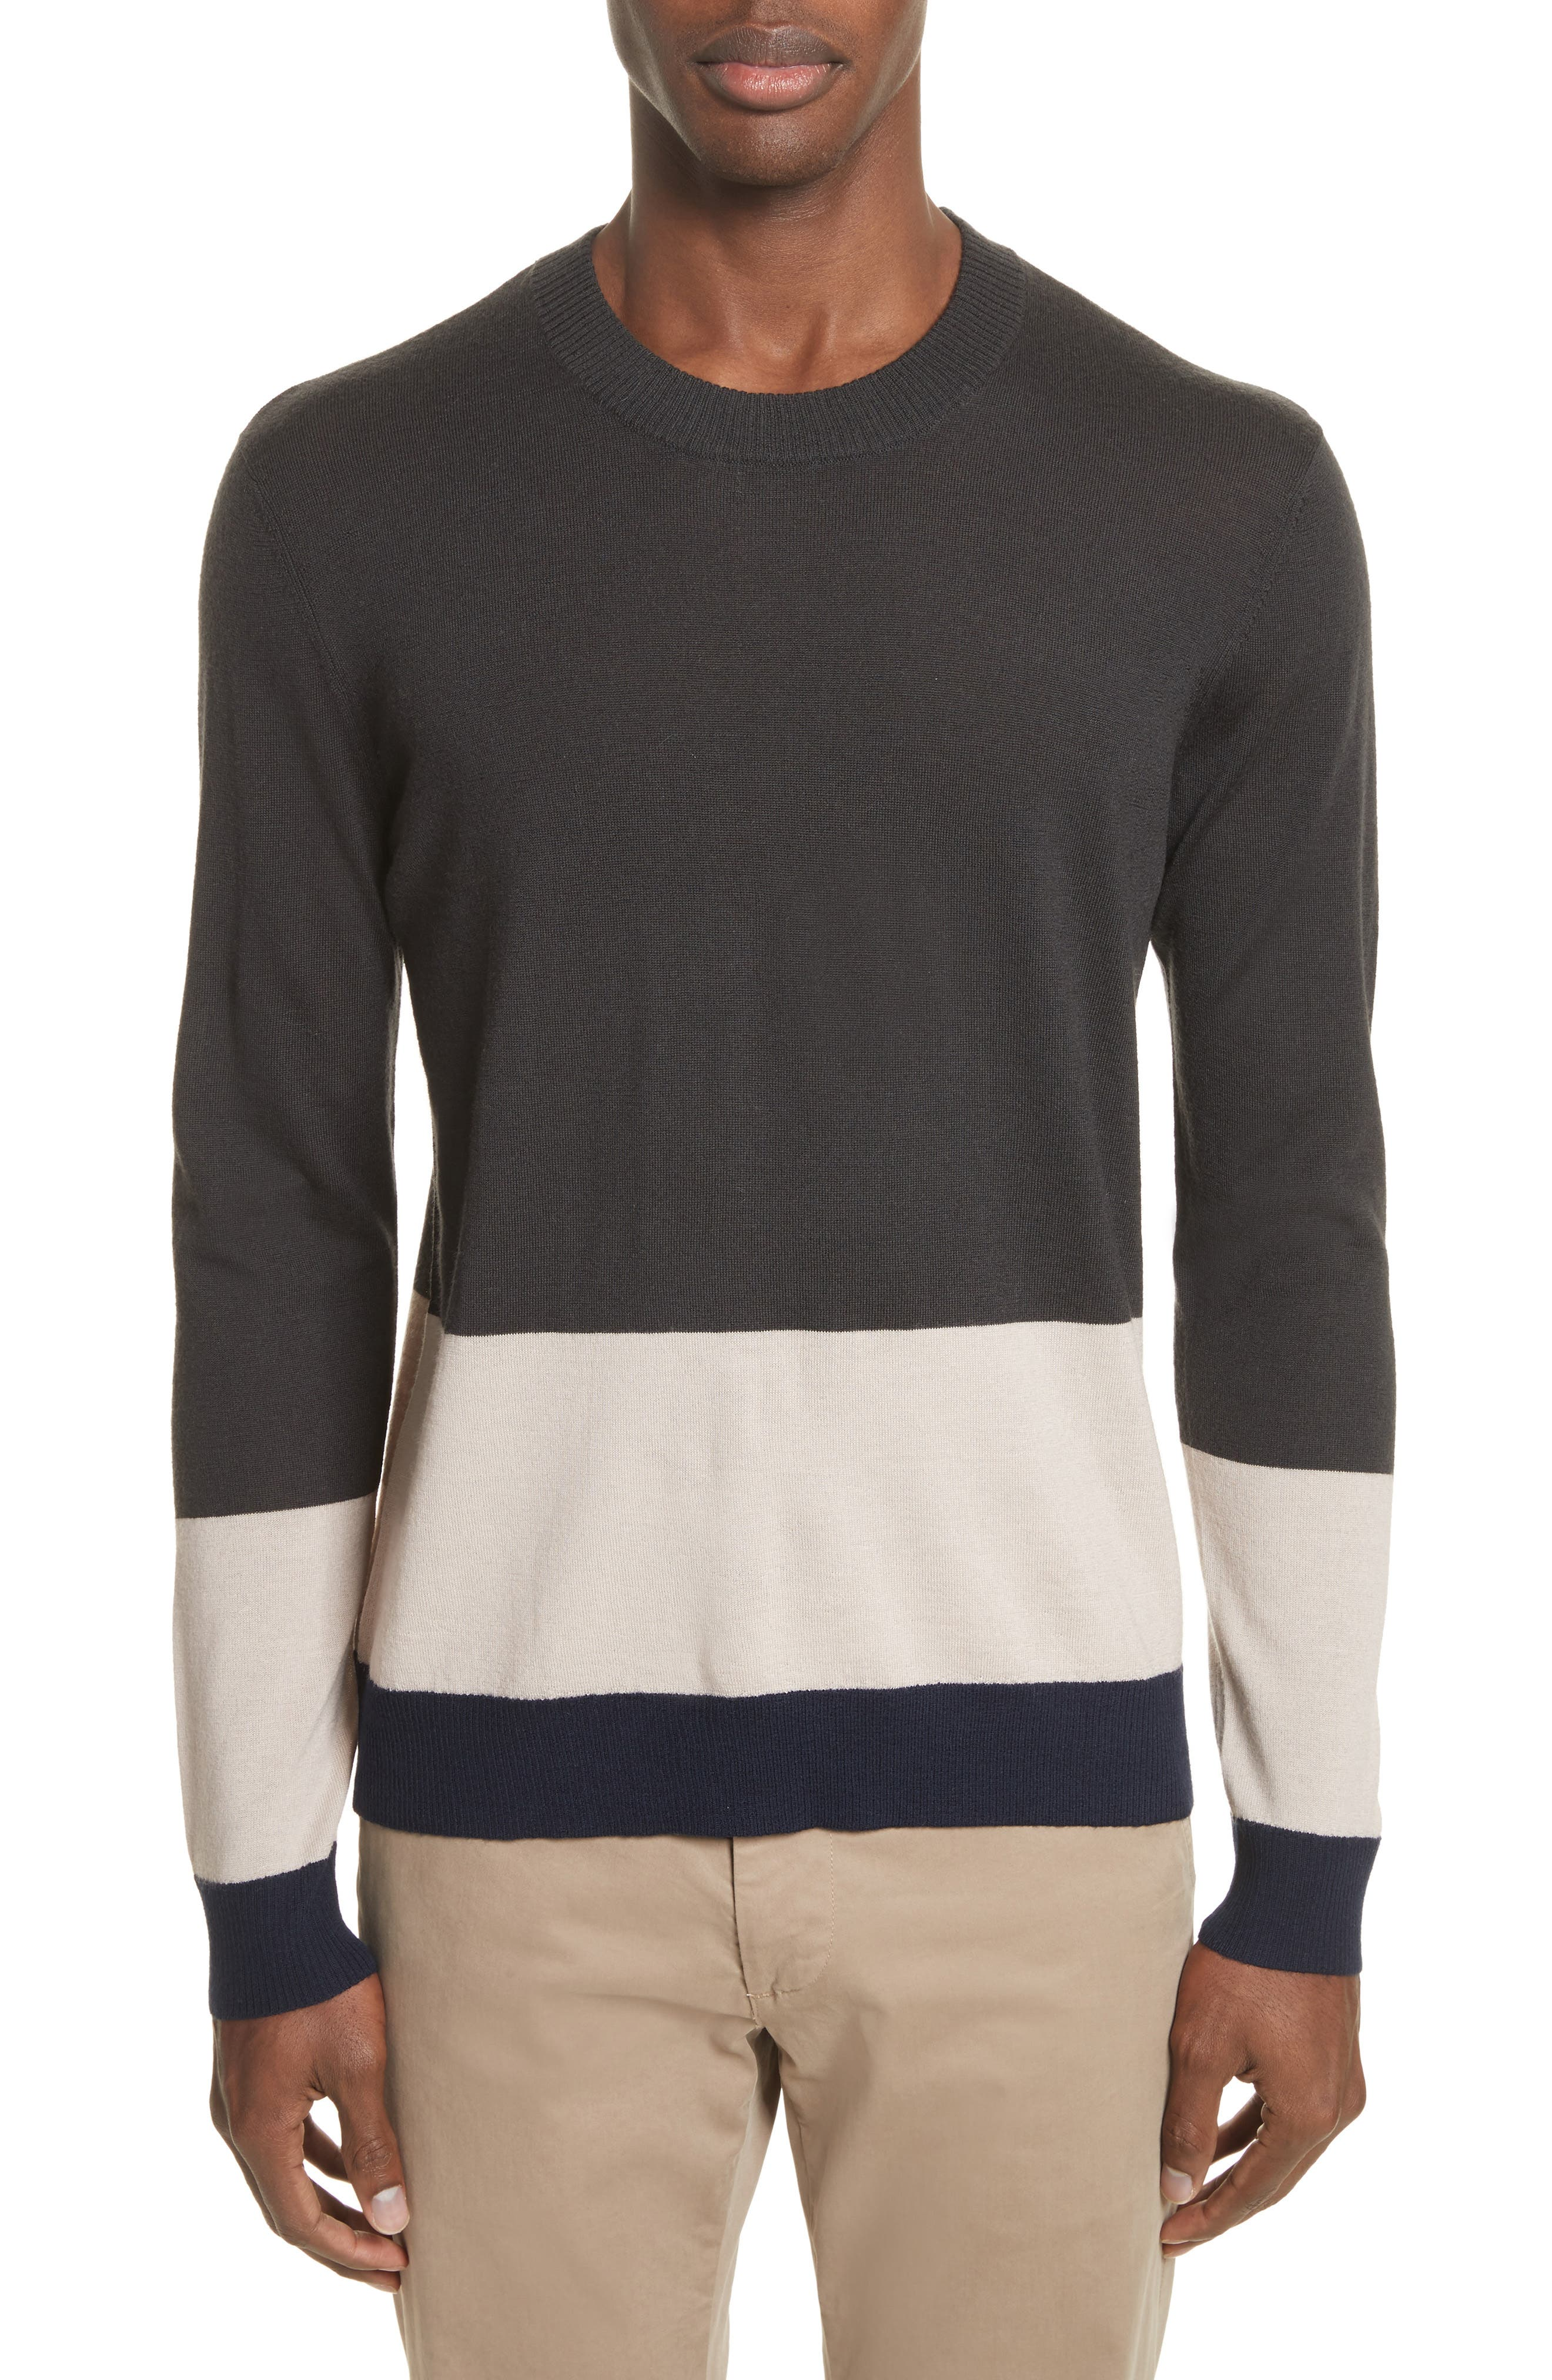 Alternate Image 1 Selected - ATM Anthony Thomas Melillo Colorblock Merino Wool Sweater